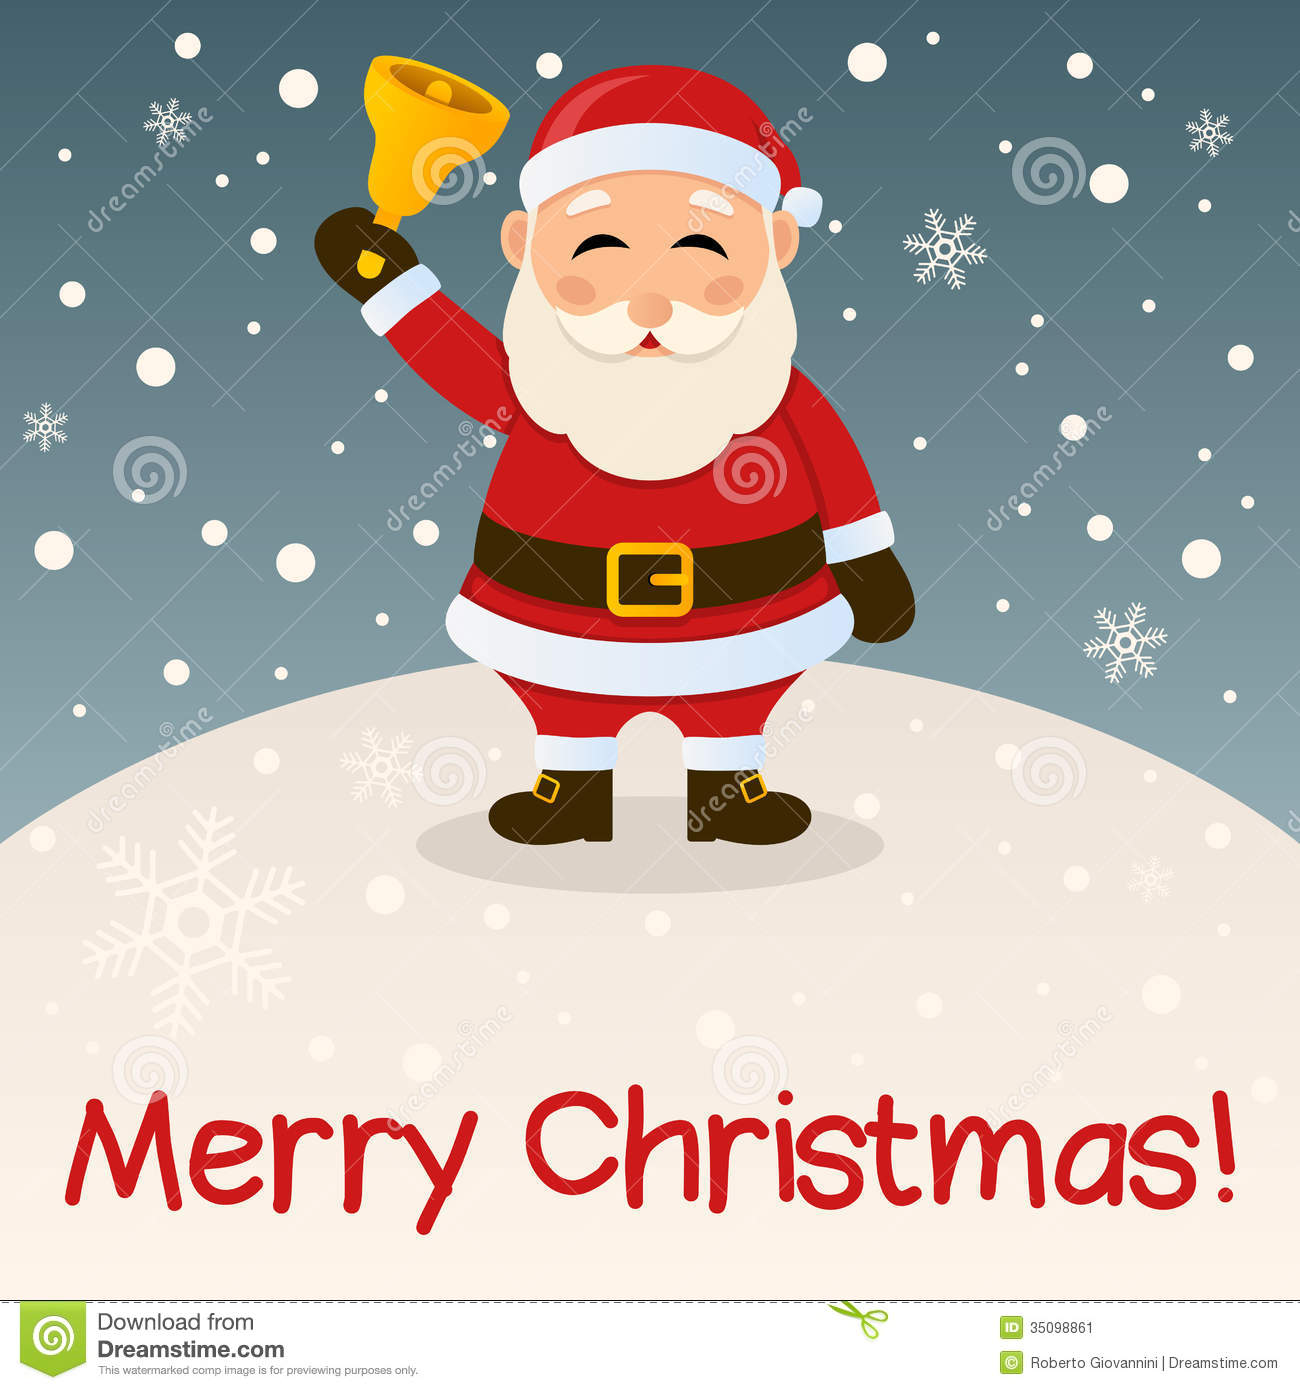 Santa Claus Merry Christmas Card Stock Image - Image: 35098861